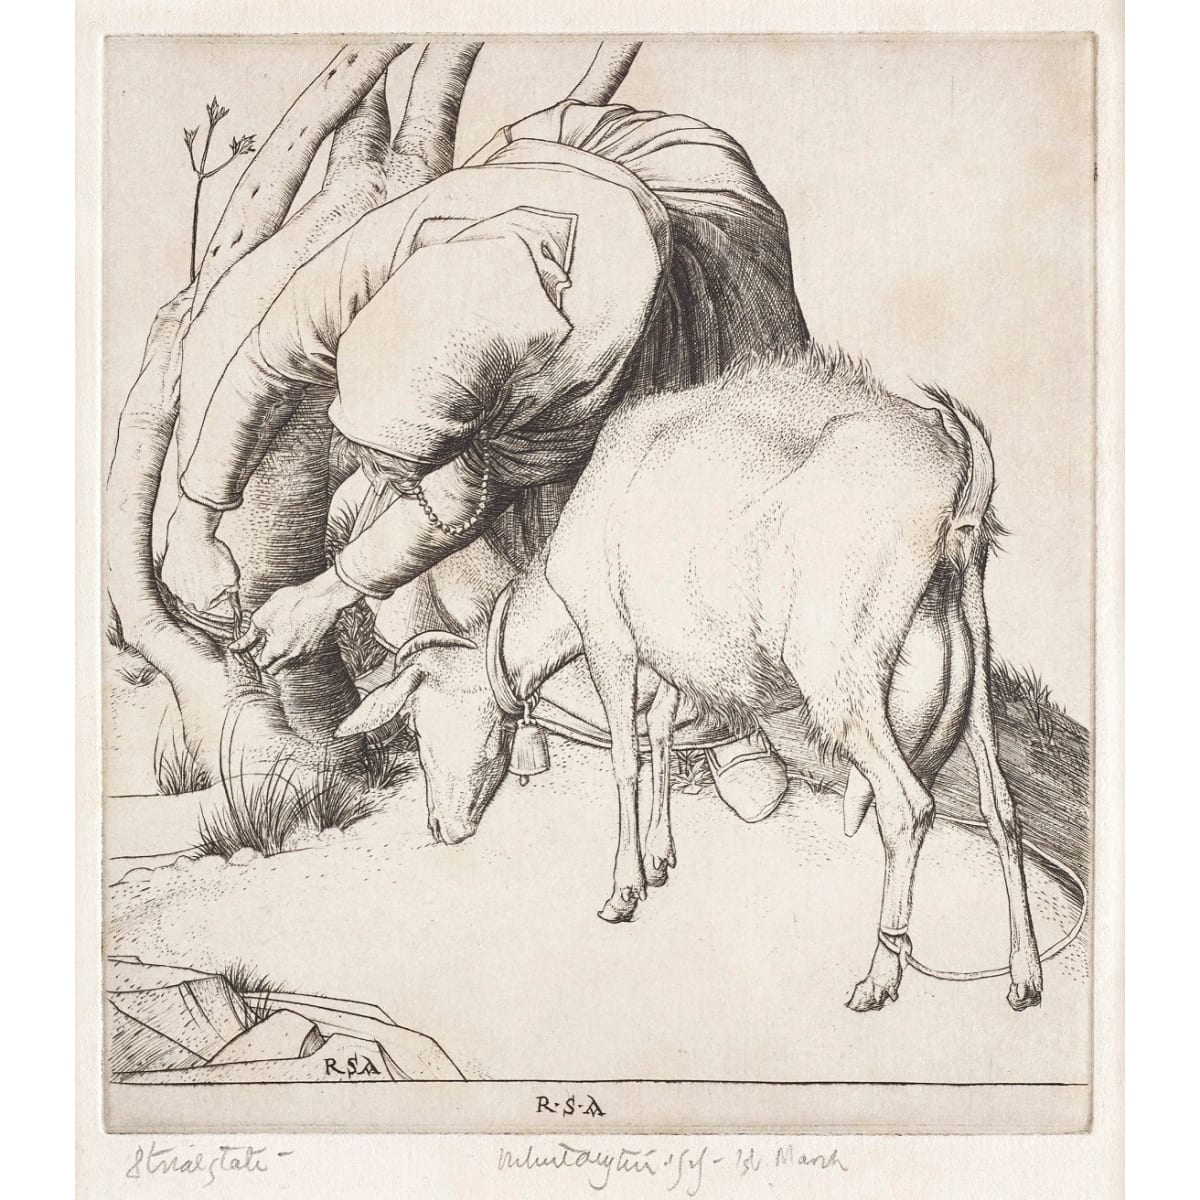 Robert Sargent Austin Tethering a goat, 1929 initialled RSA in plate; signed and dated 1st March 1929, inscribed '8th trial state' in pencil to margin etching plate size: 5 3/8 x 4 7/8 inches